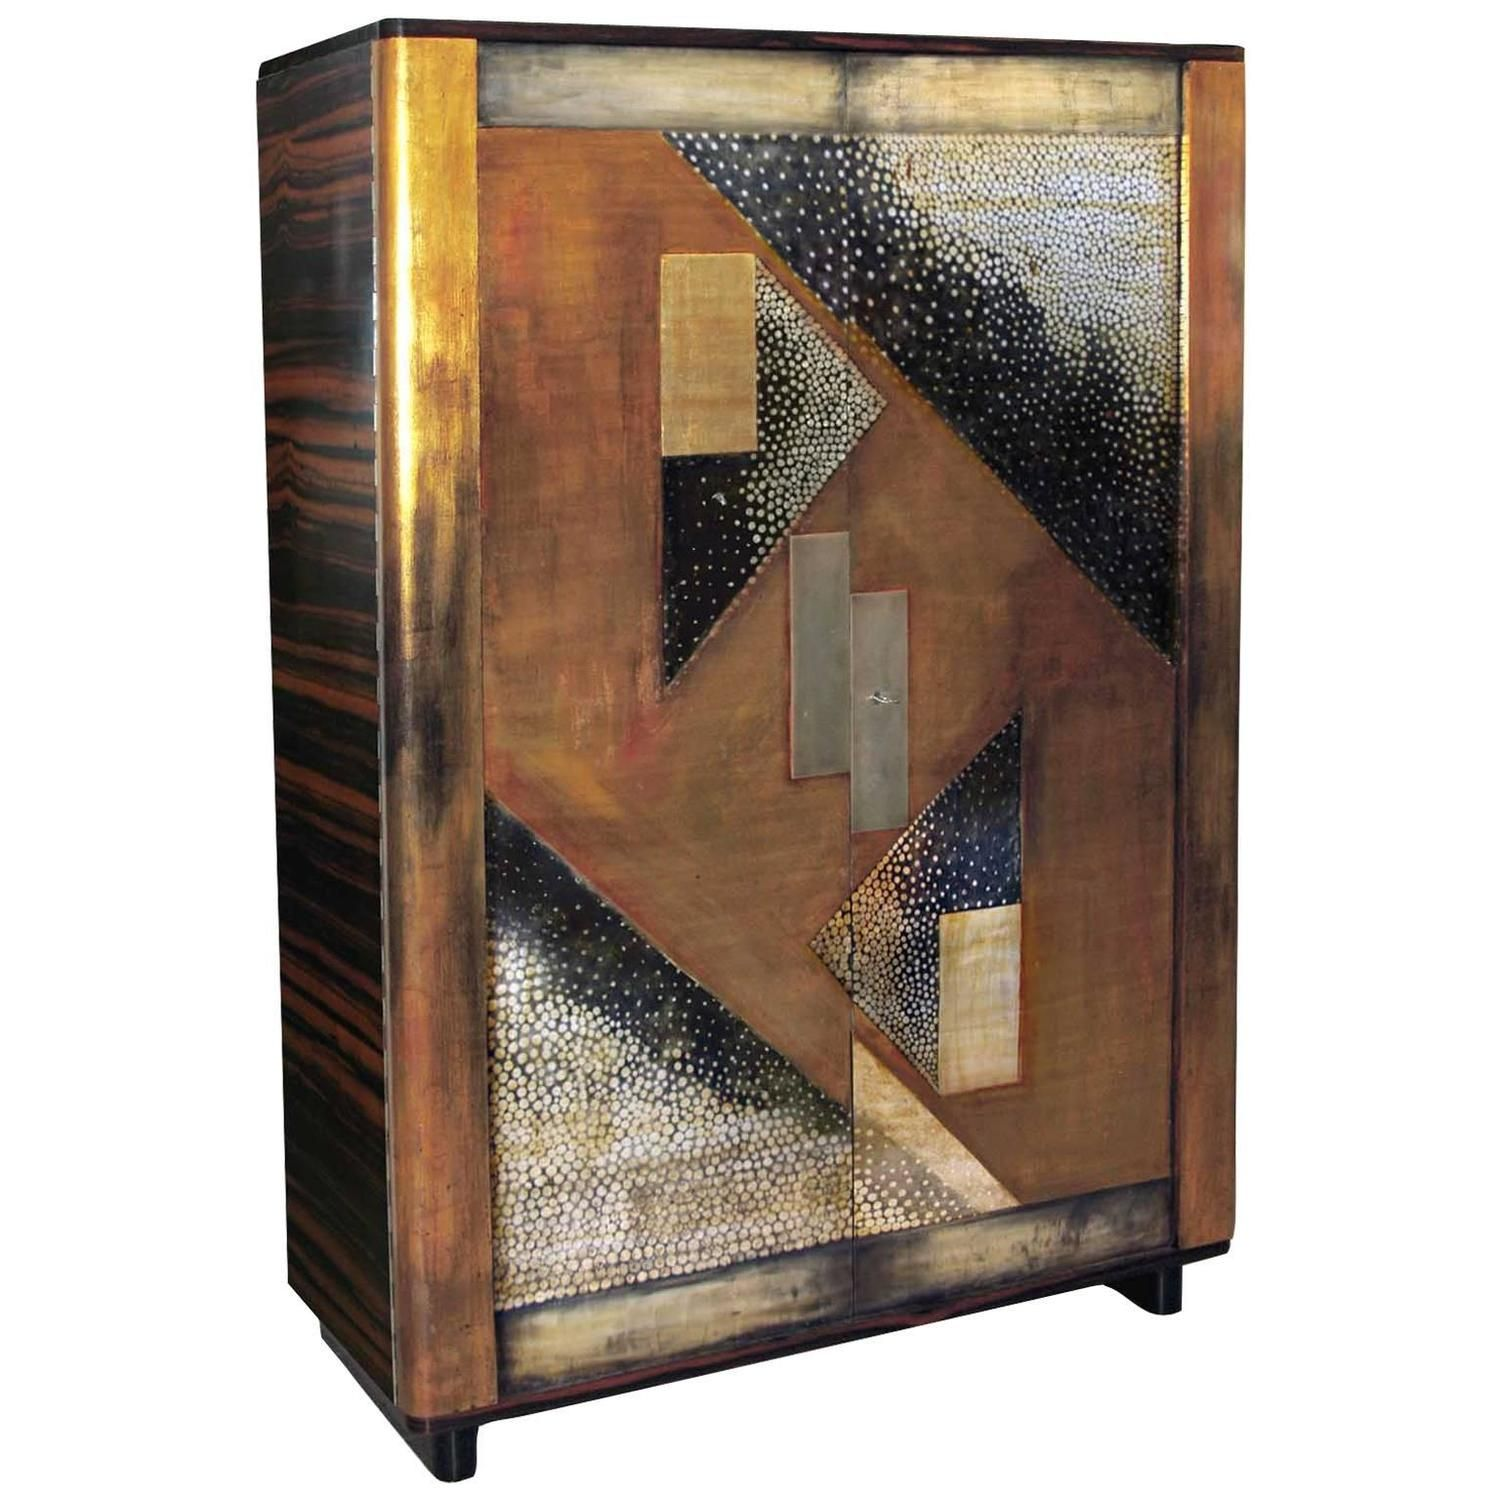 French Art Deco Cabinet Attributed to Jean Dunand Design Eugen